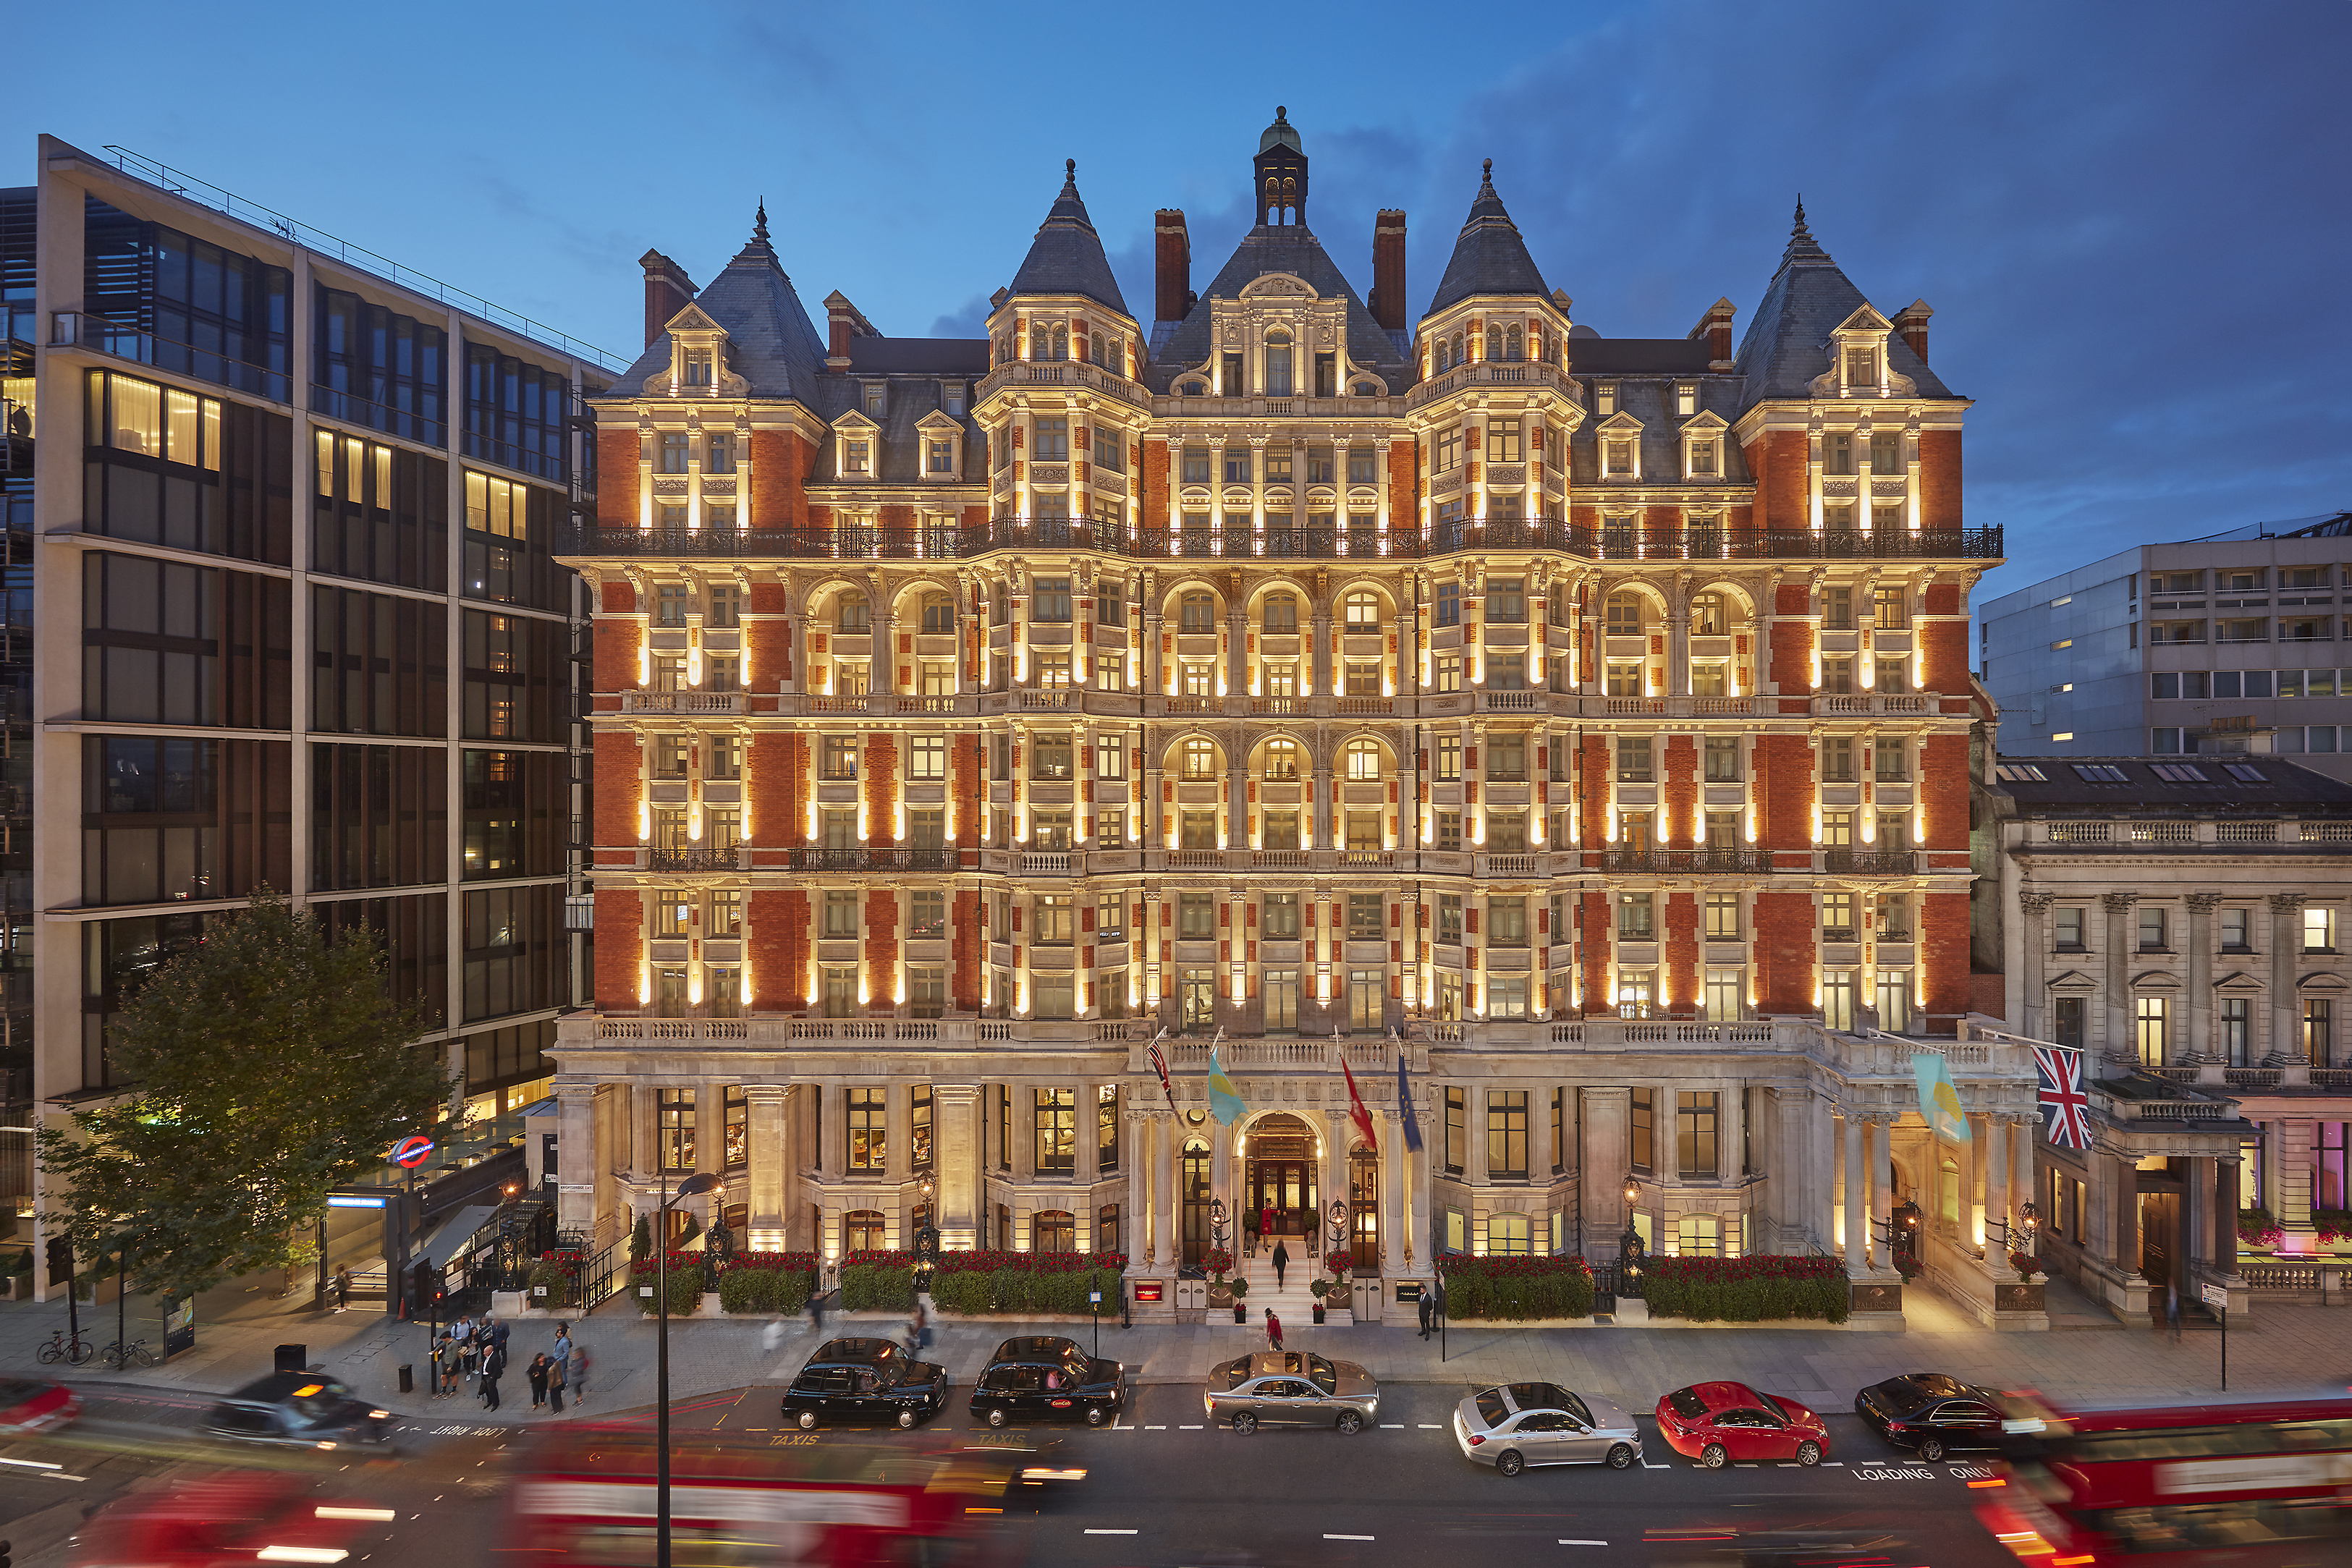 Mandarin Oriental Hyde Park, London is scheduled to reopen on Dec. 4 after an extensive renovation to its public areas, restaurants and event spaces.